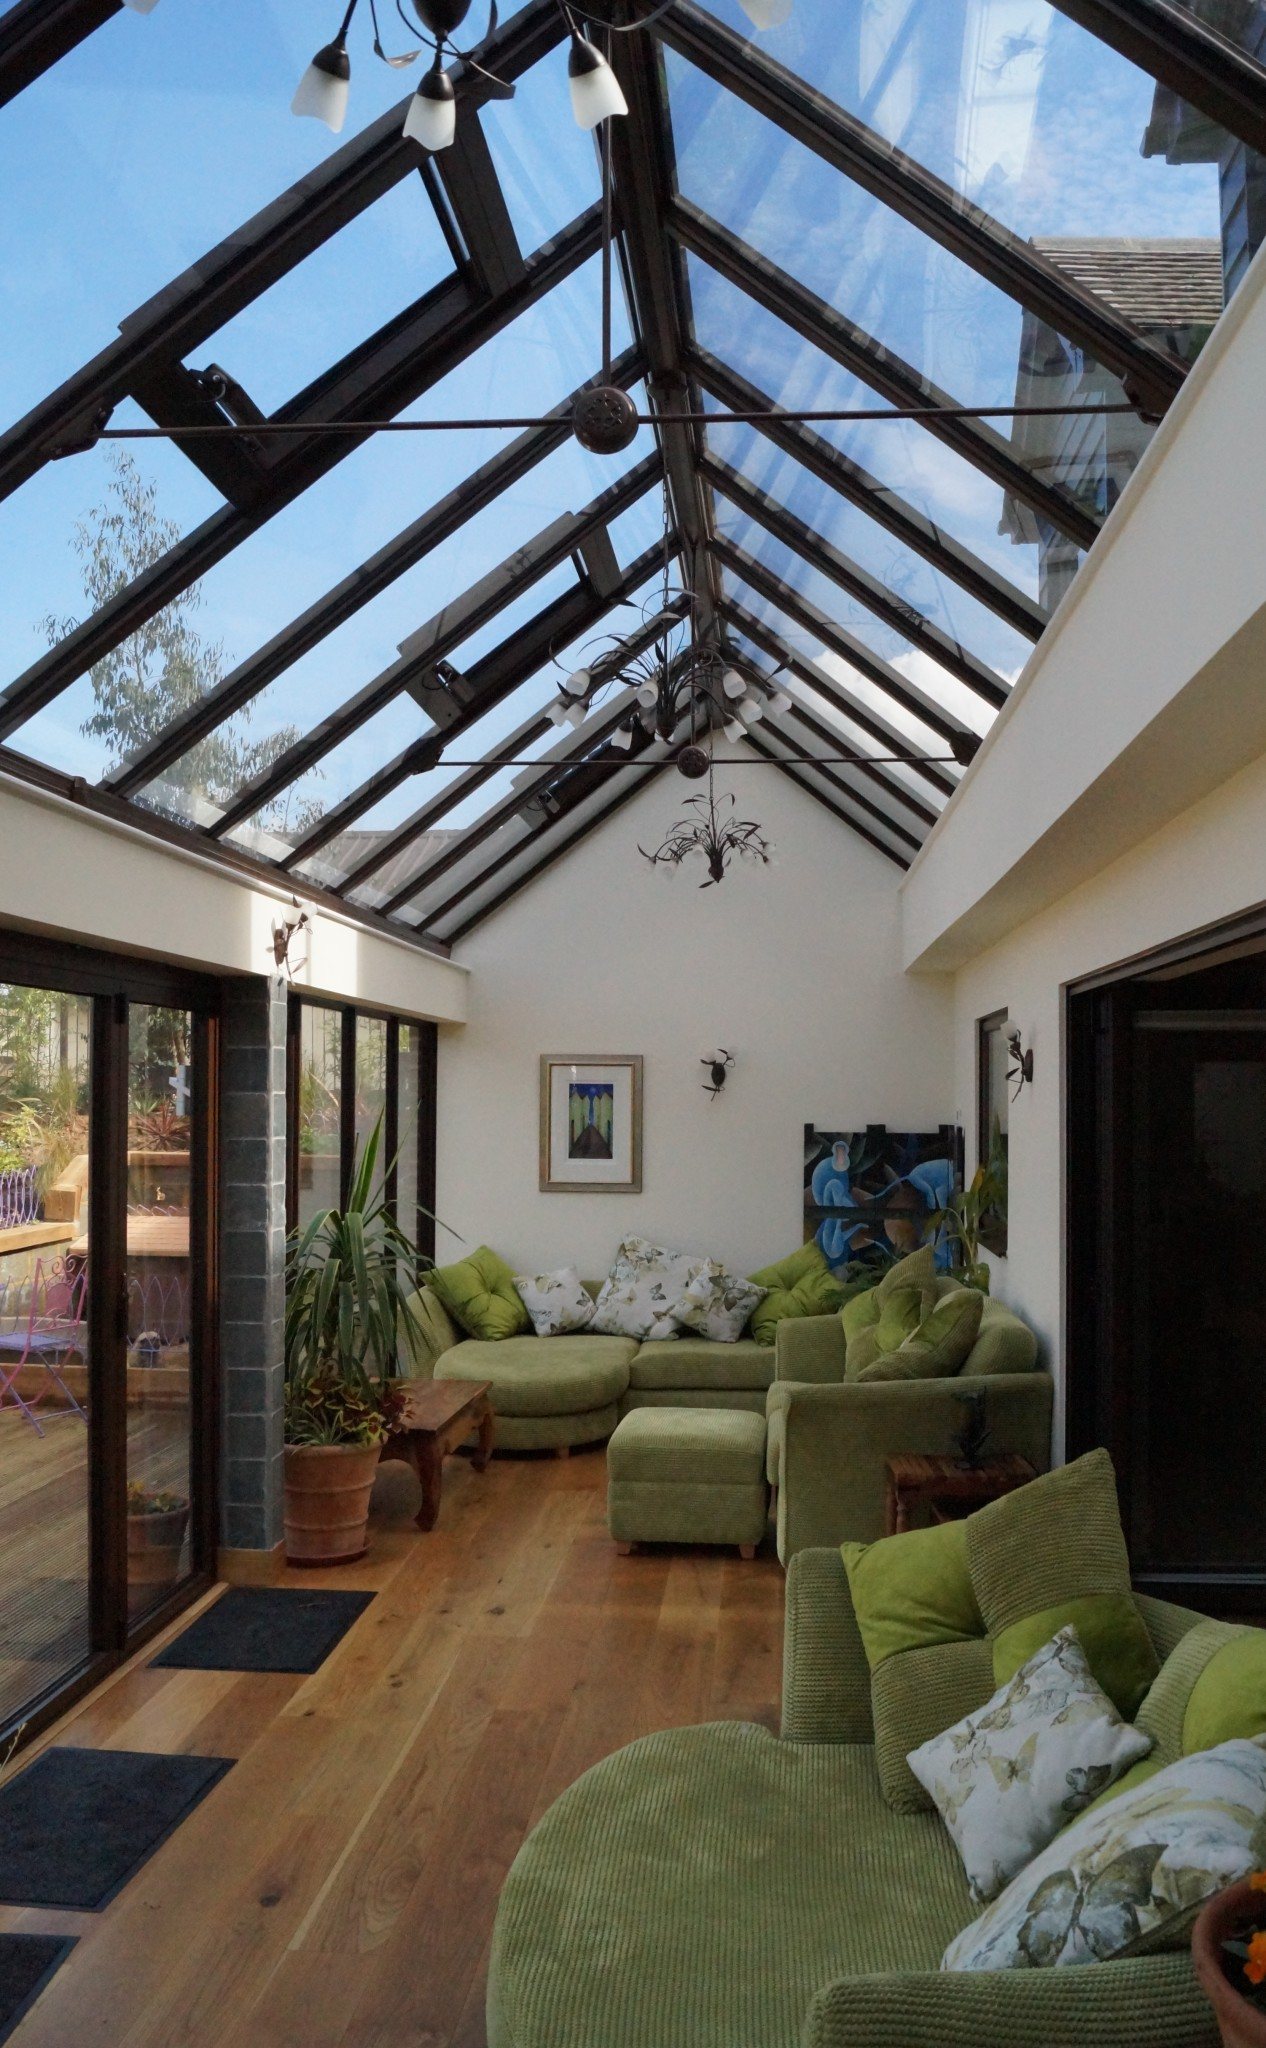 Extension & Home Improvement Works - Waller Domestic Building Services Kent